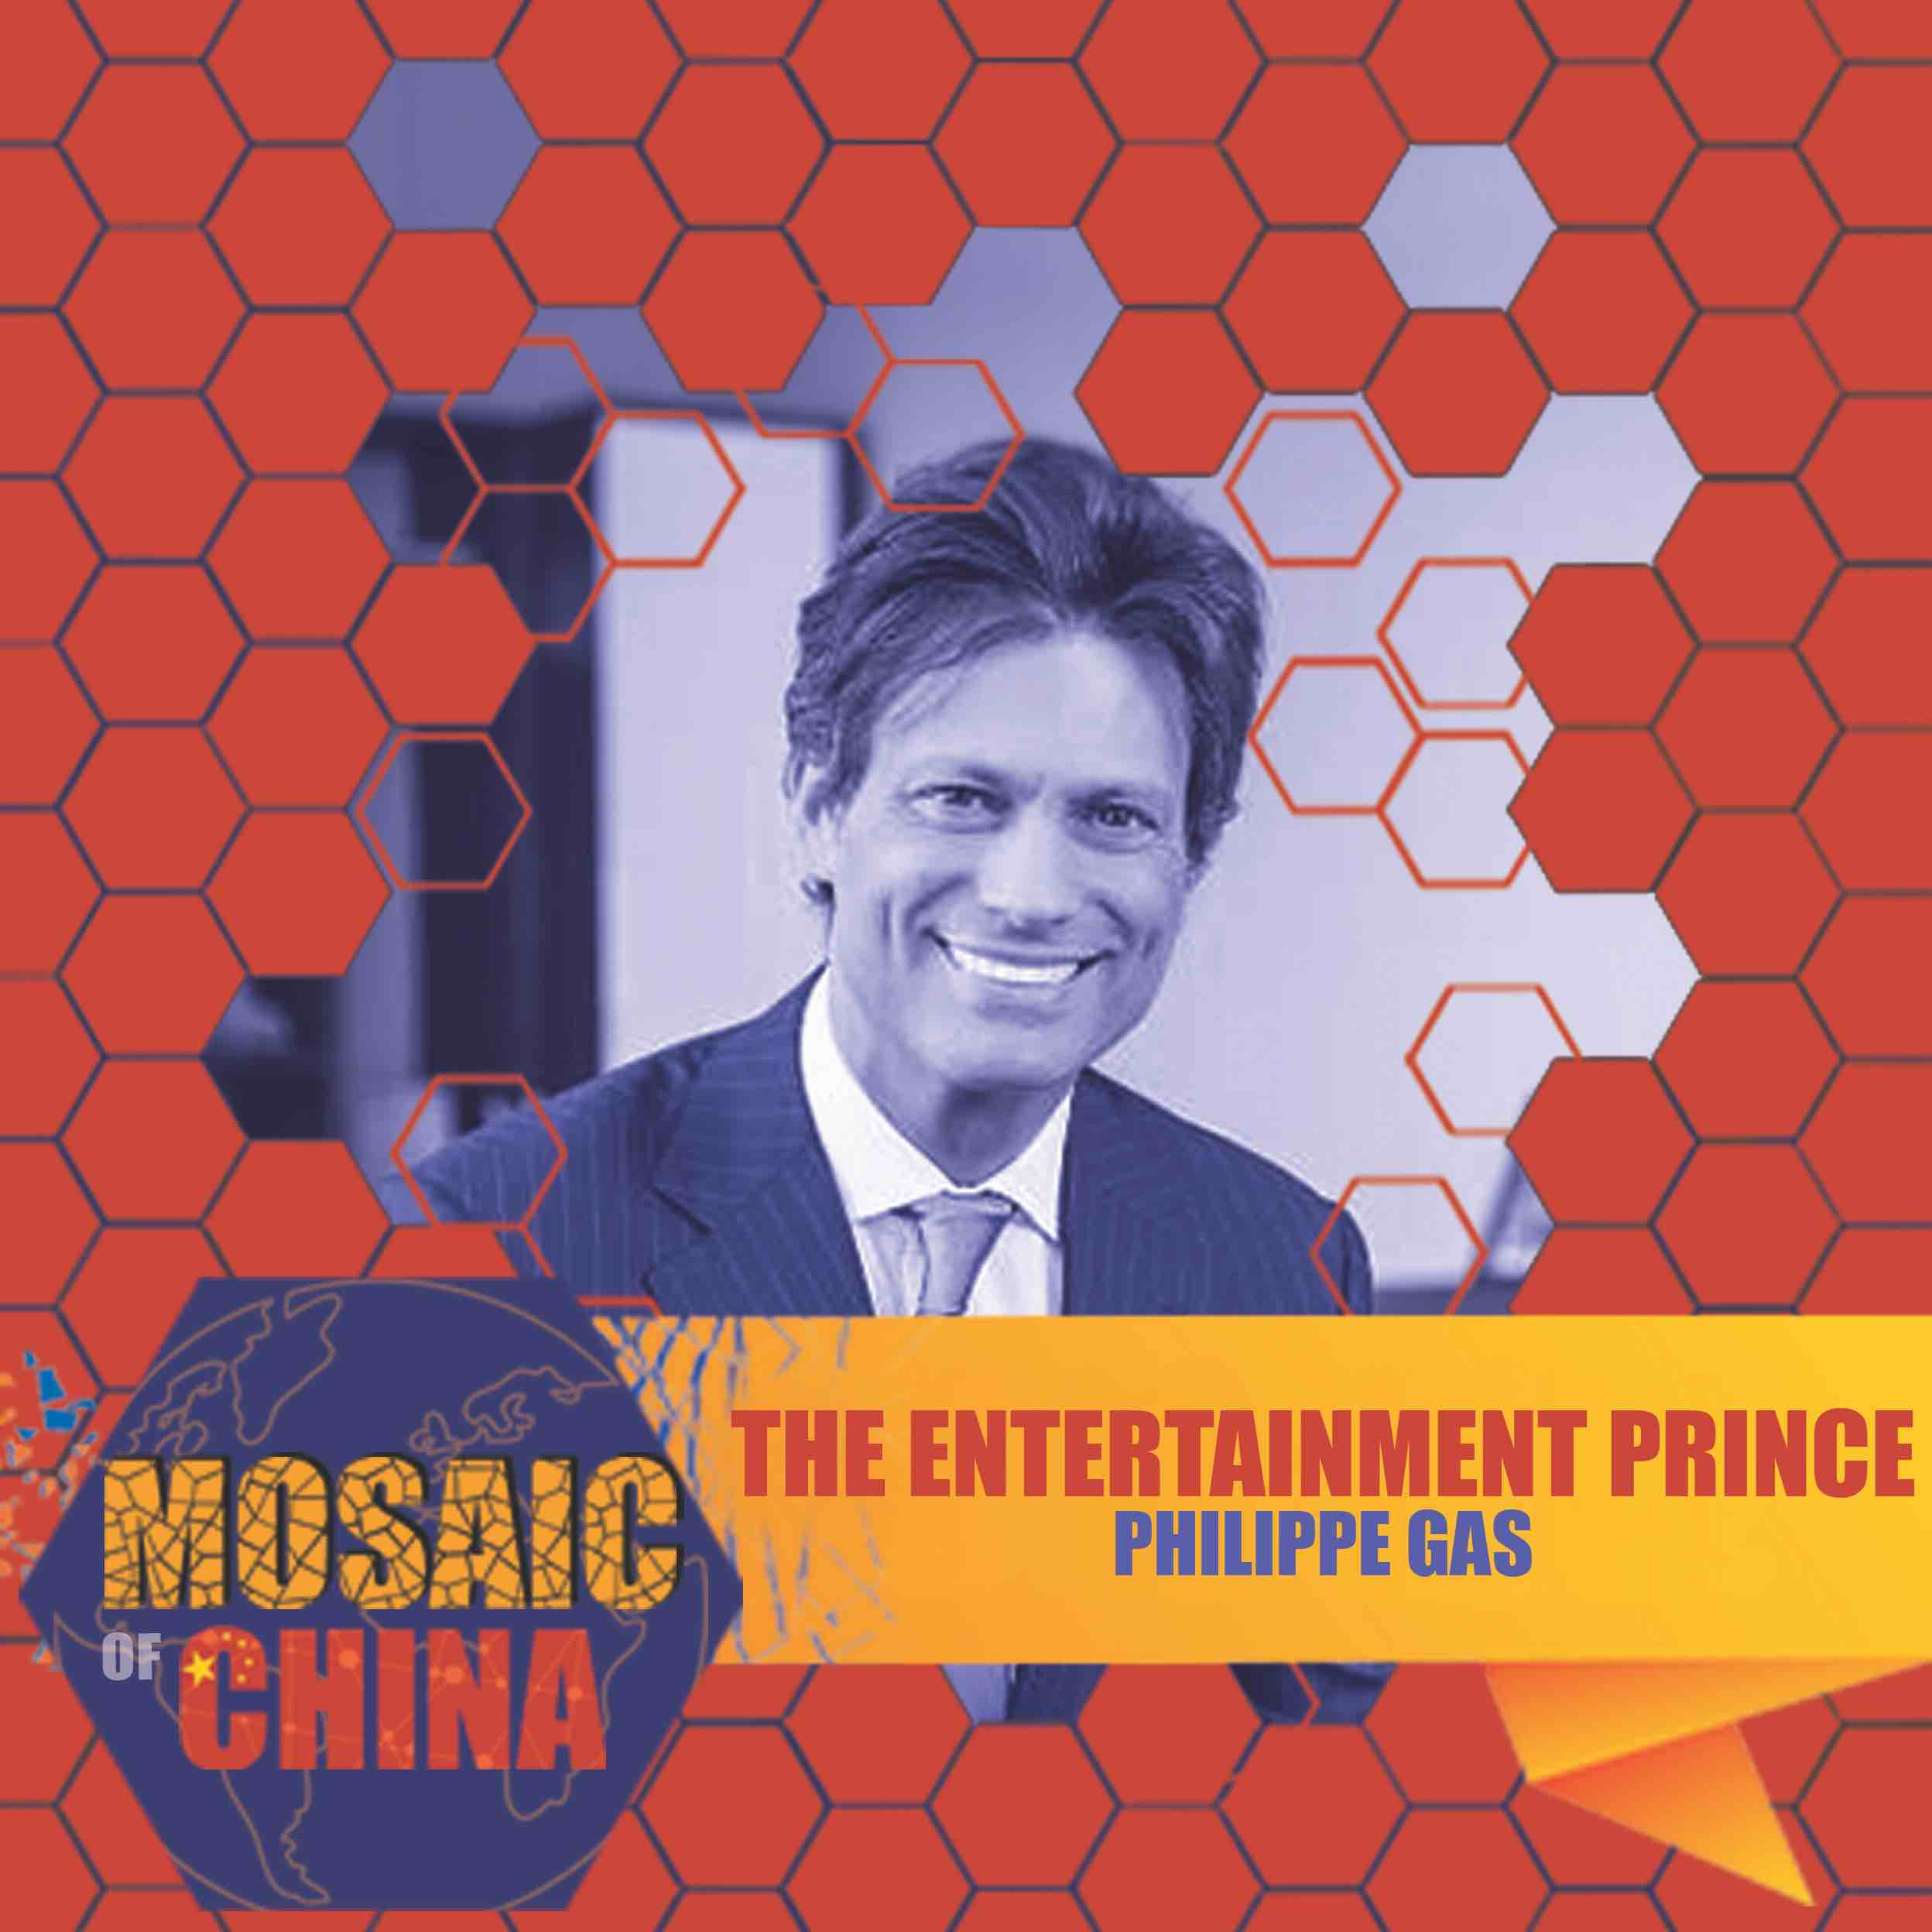 The Entertainment Prince (Philippe Gas, Disney Shanghai CEO)